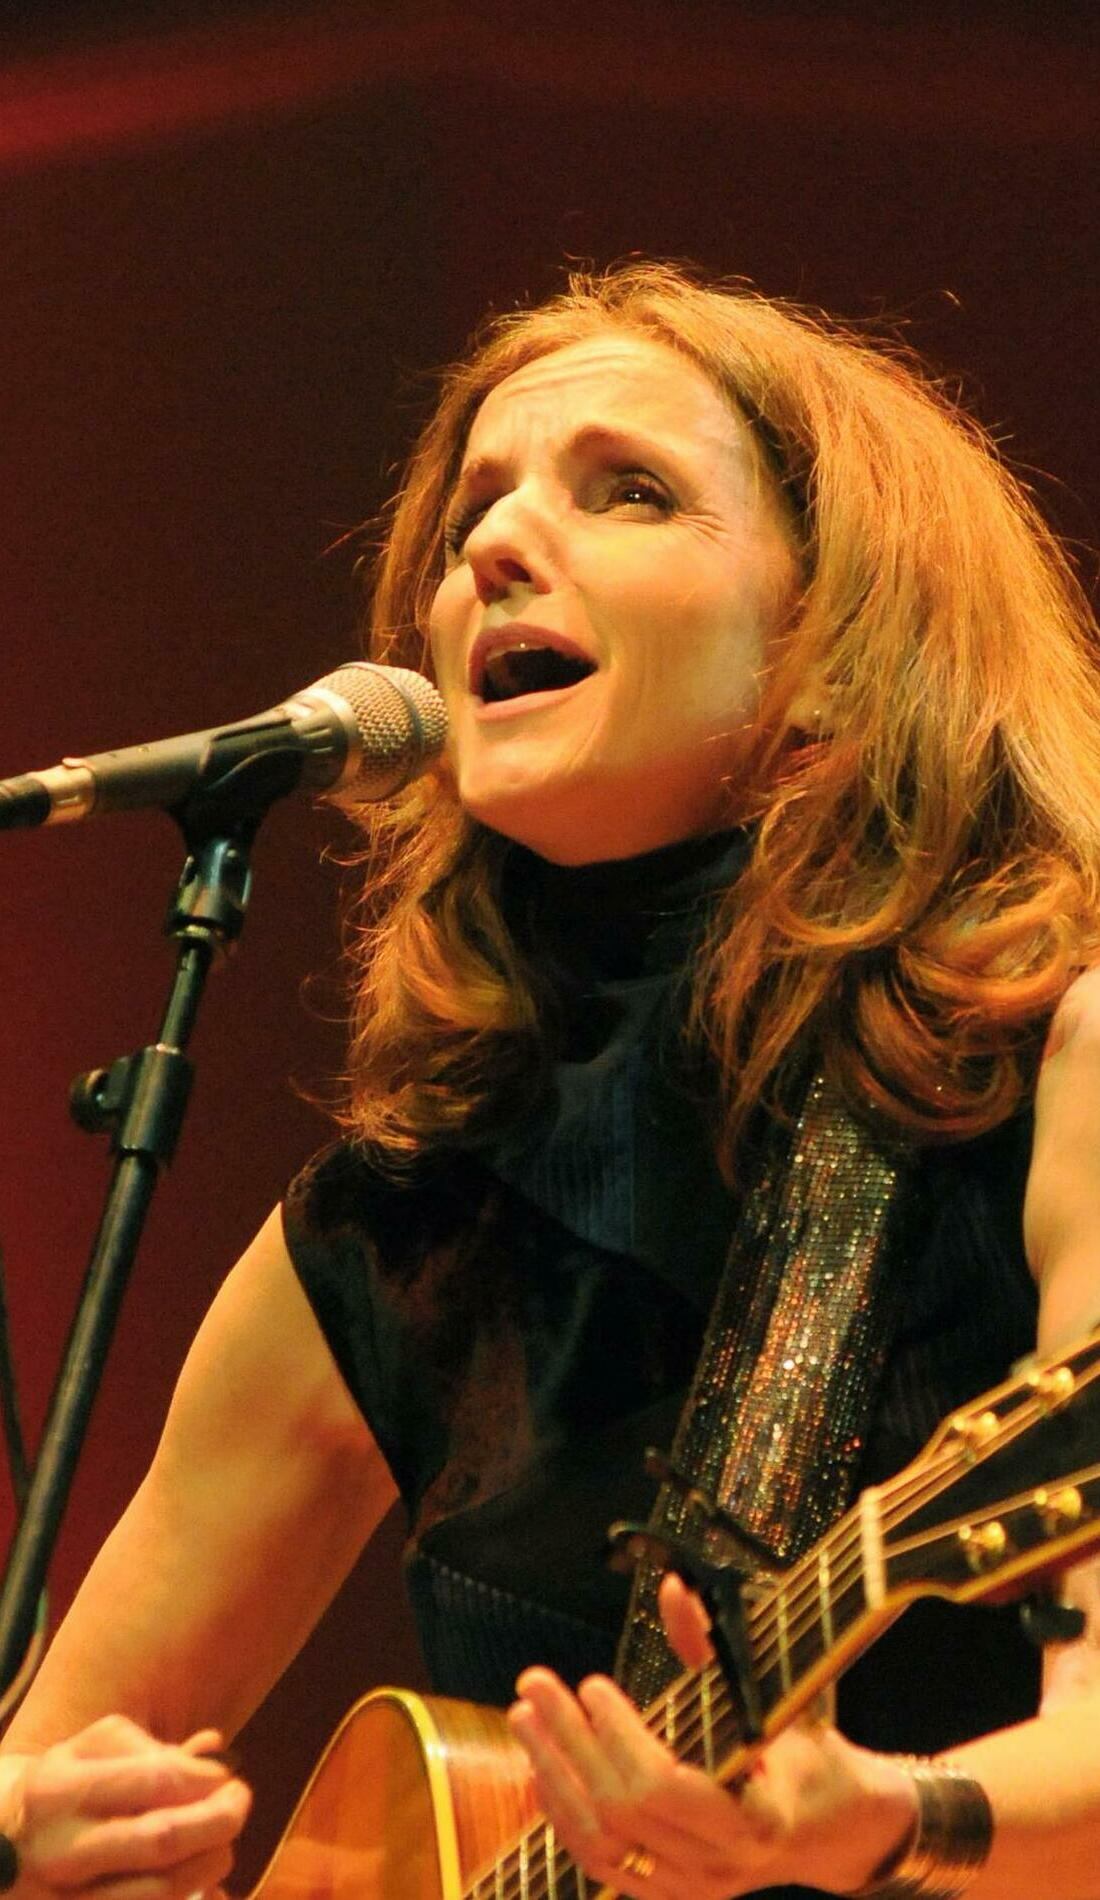 A Patty Griffin live event